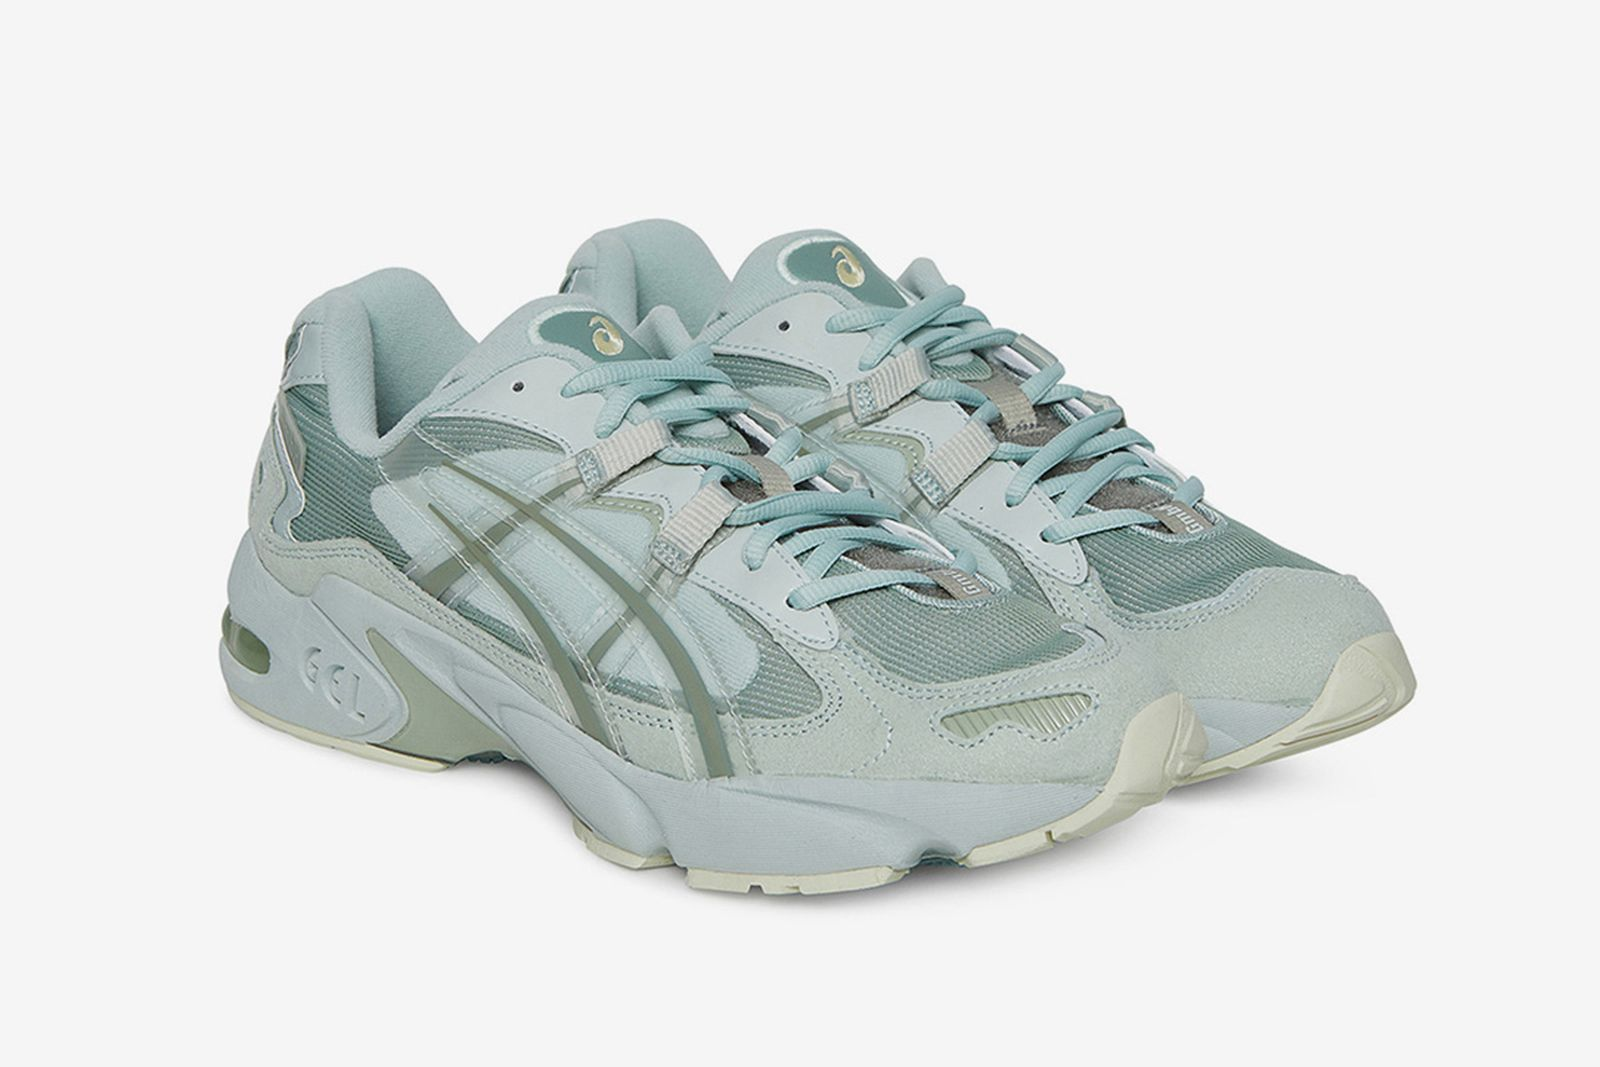 9 of Our Favorite ASICS GEL-KAYANO 5 Sneakers to Cop Right Now